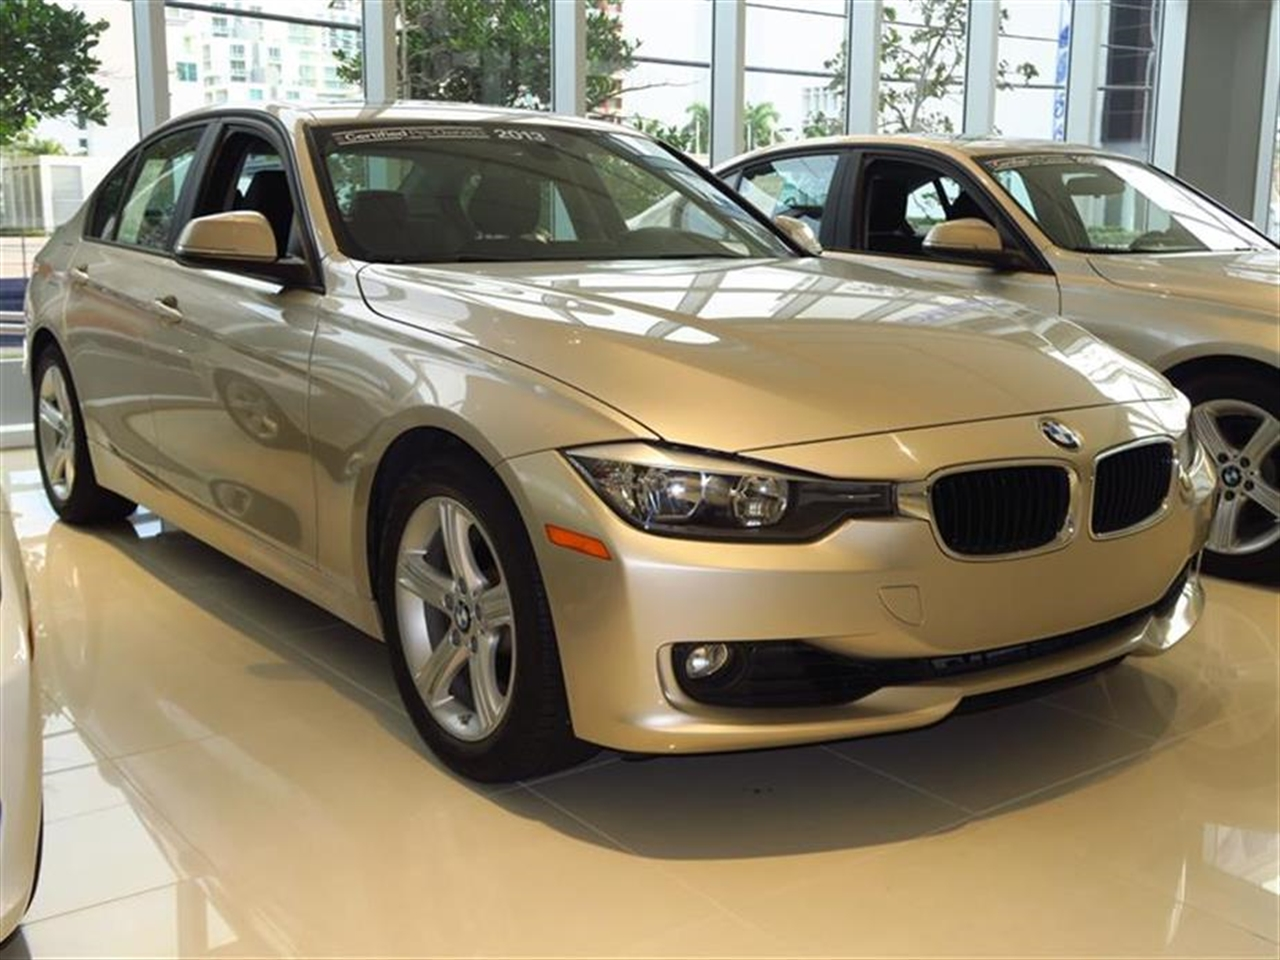 2013 BMW 3 SERIES 4dr Sdn 328i RWD 20985 miles 2-way headrests with active head restraints 3-spo